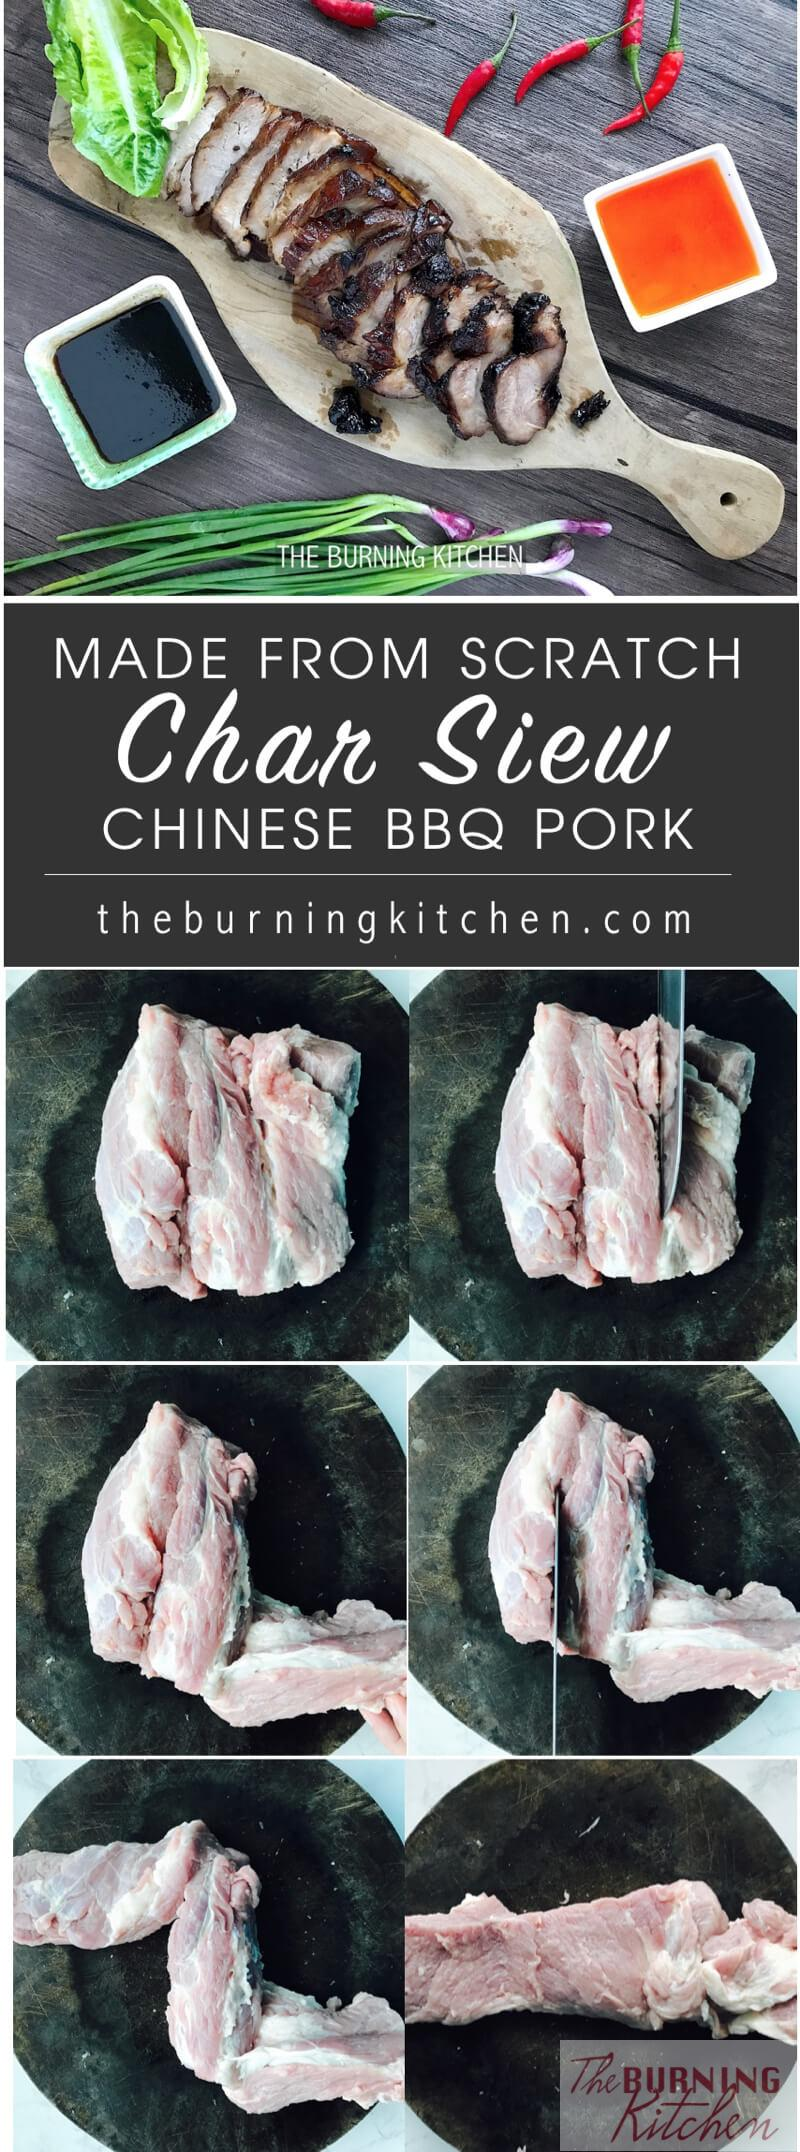 This is Mum's Sticky Chinese BBQ Pork, or Char Siew recipe with no MSG and no food colouring. Look how juicy and succulent the Char Siew is! My absolute favourite are the little sticky glazed bits with a slightly charred, smoky flavour. Simply heavenly!